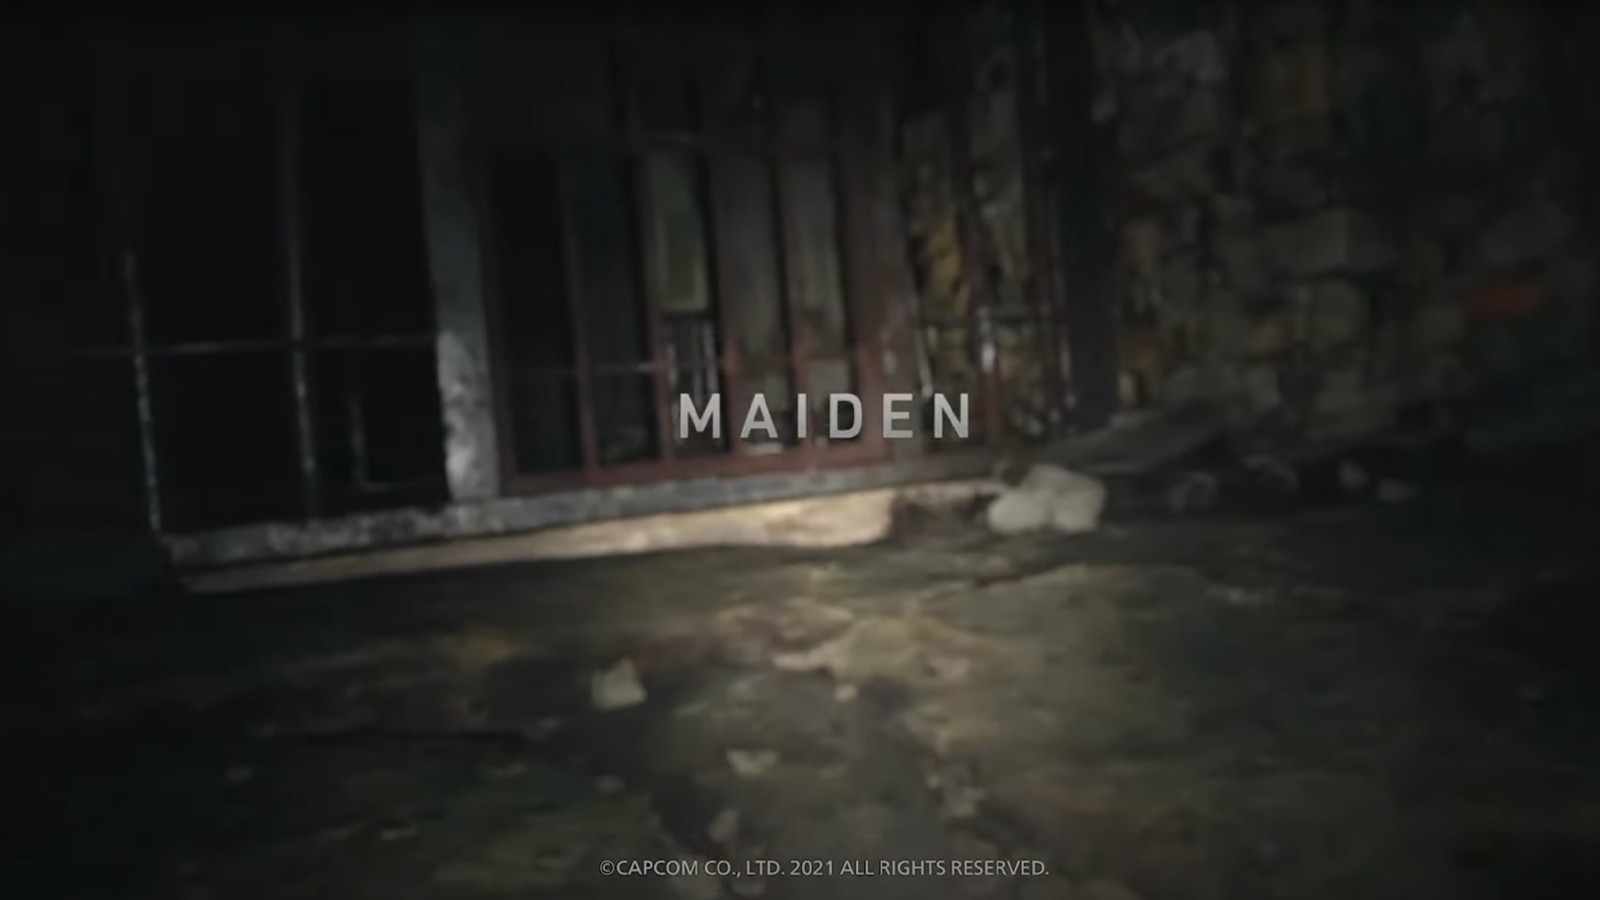 Maiden demo PS5 exclusive Resident Evil